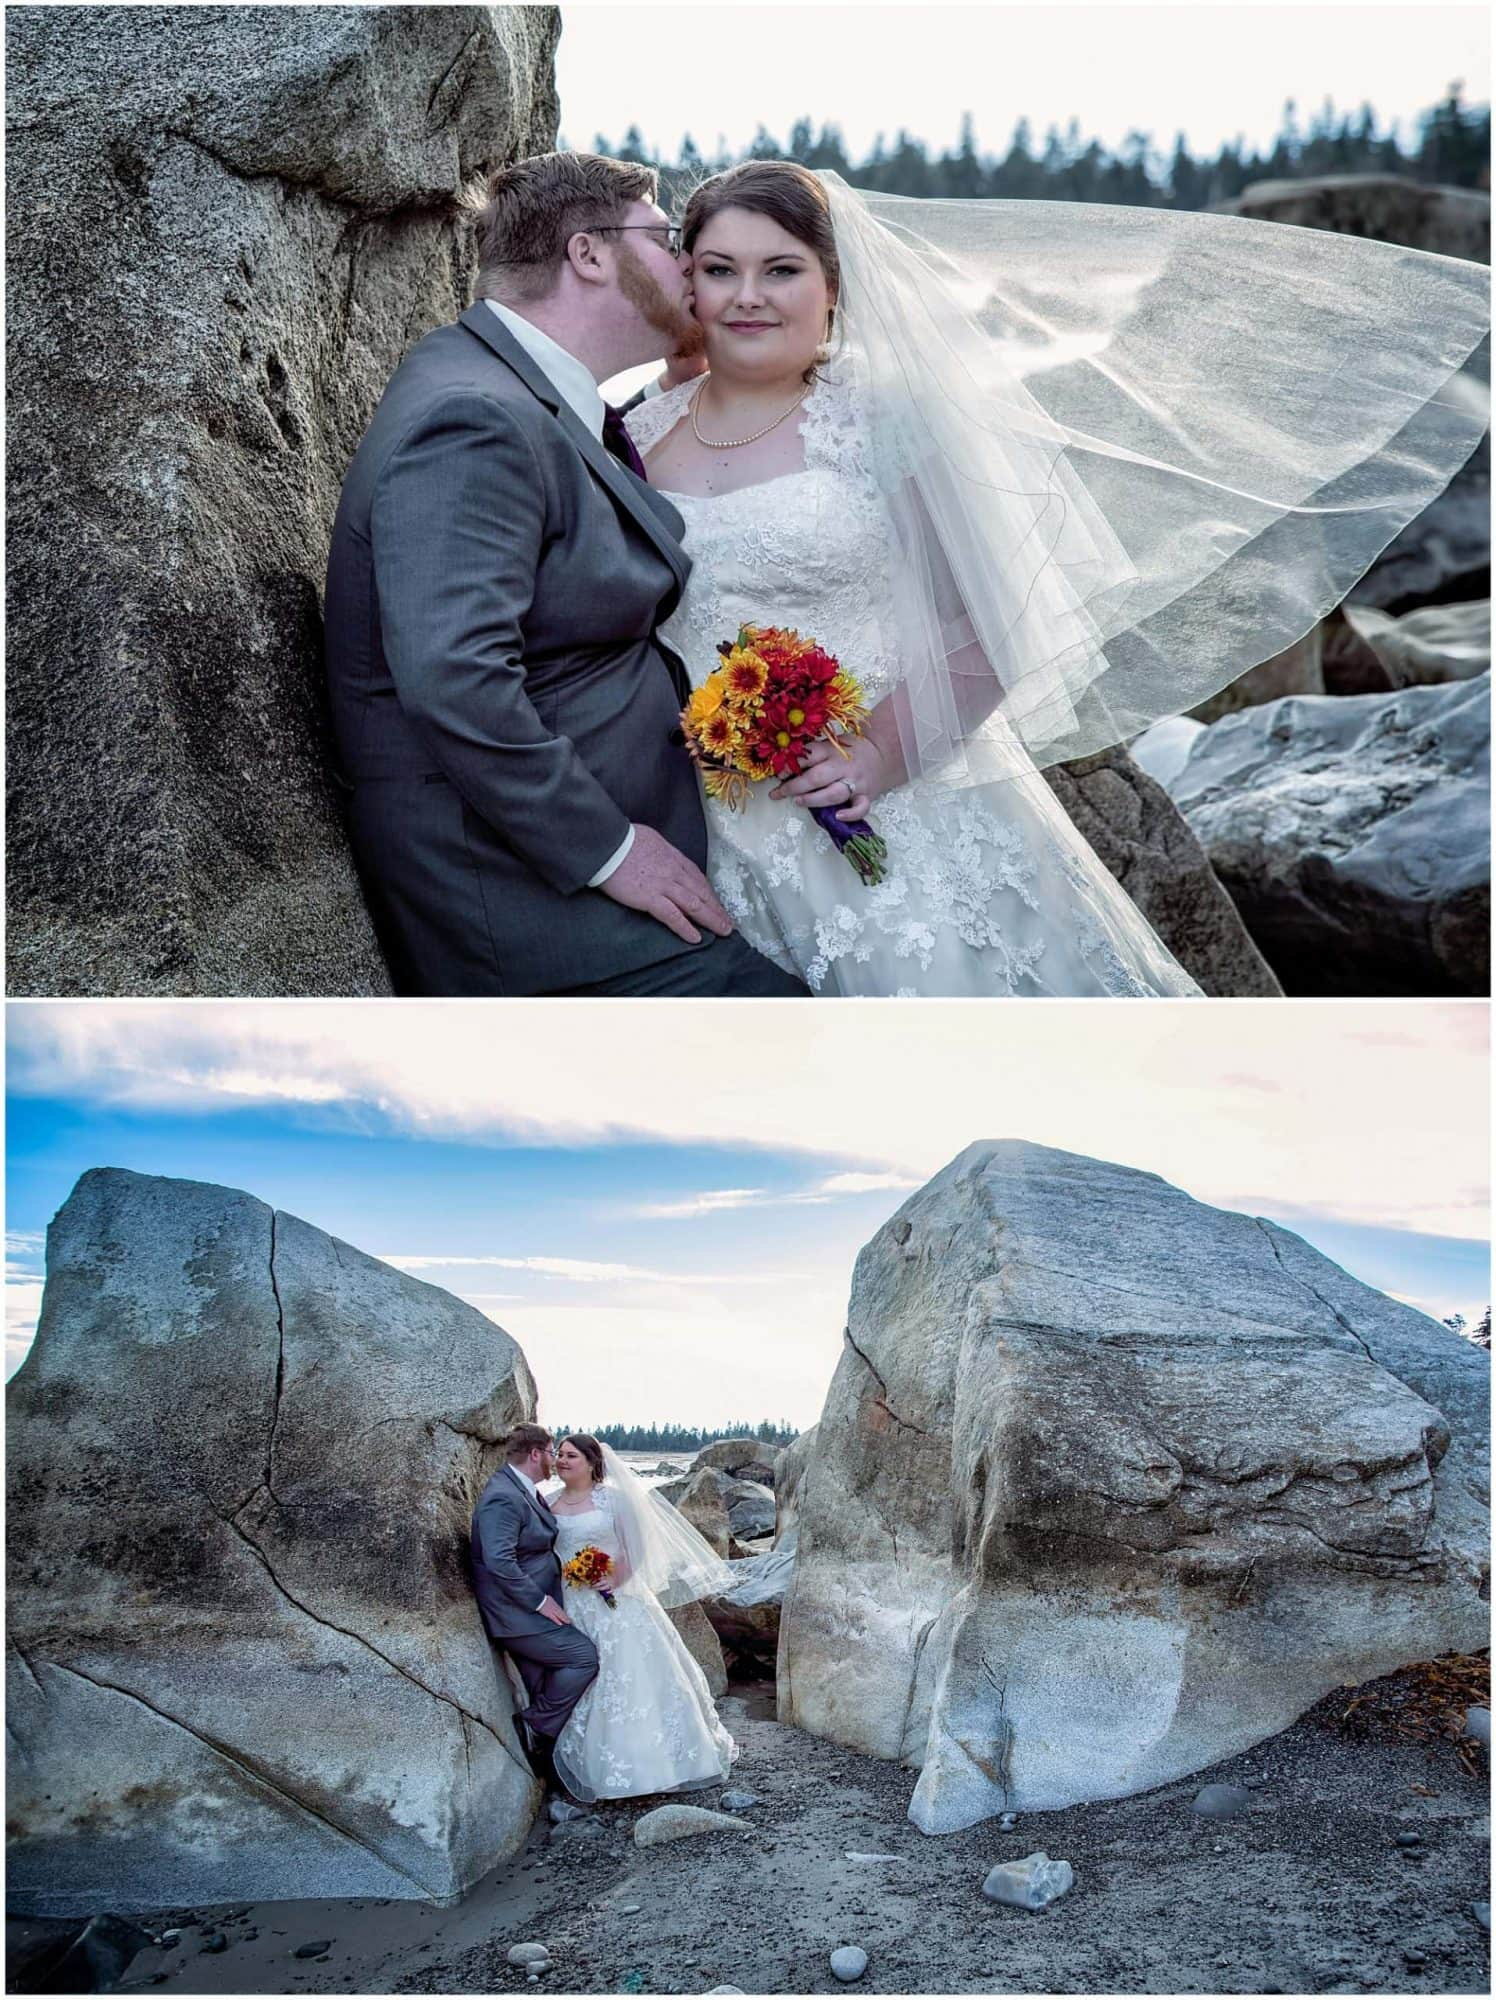 The bride and groom pose for wedding photos on the beach between the rocks at a White Point wedding in Nova Scotia.